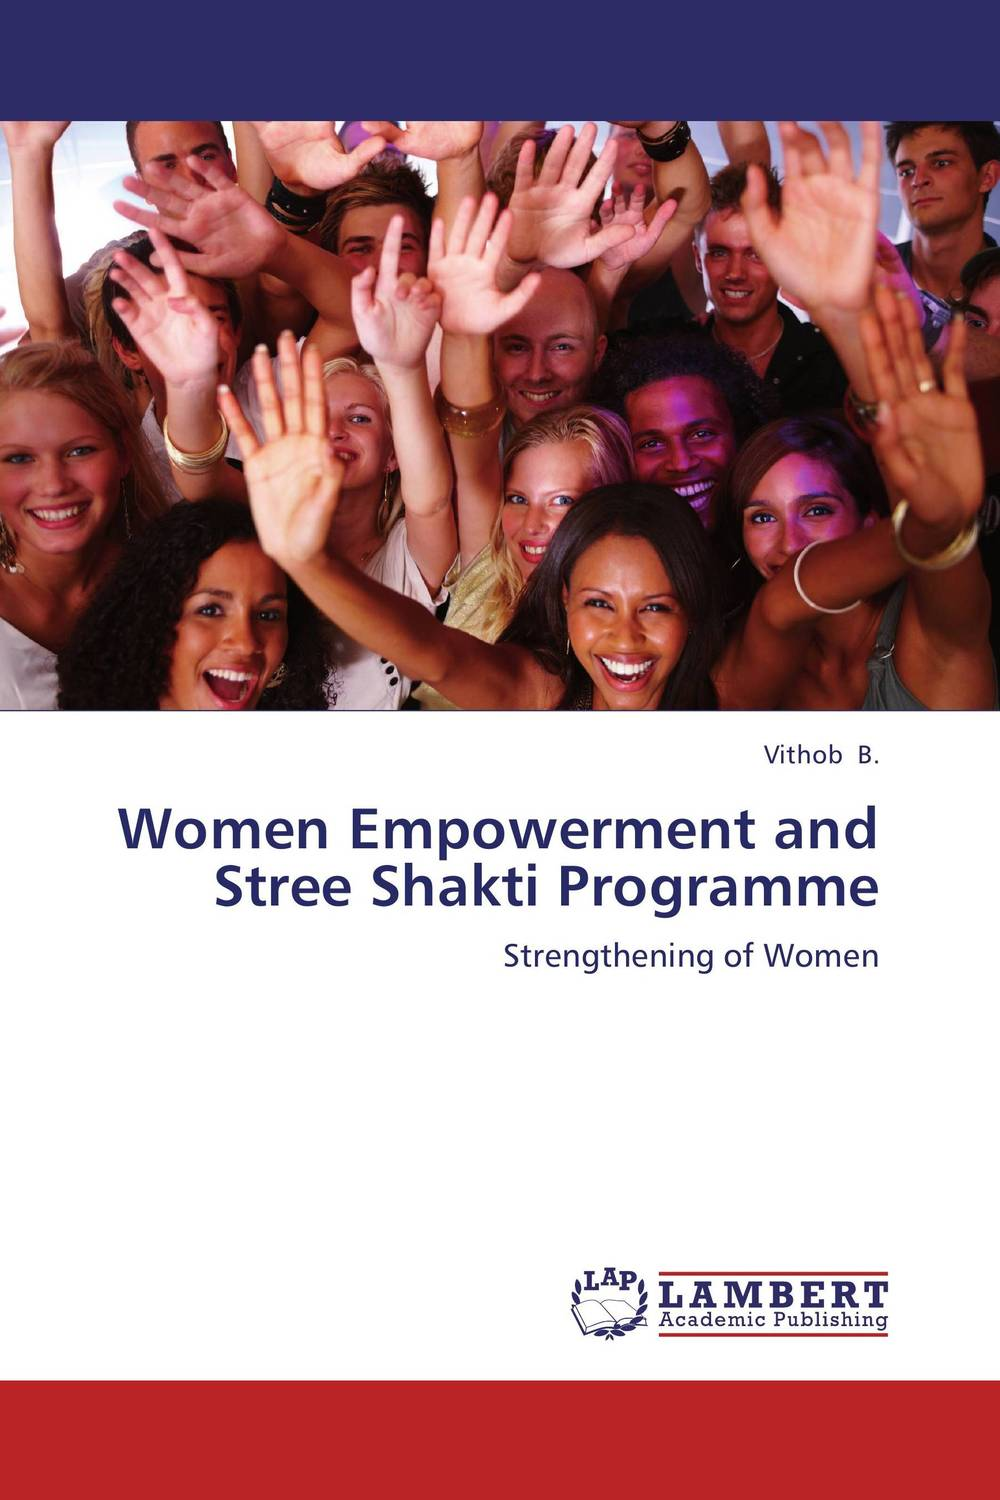 woman and empowerment